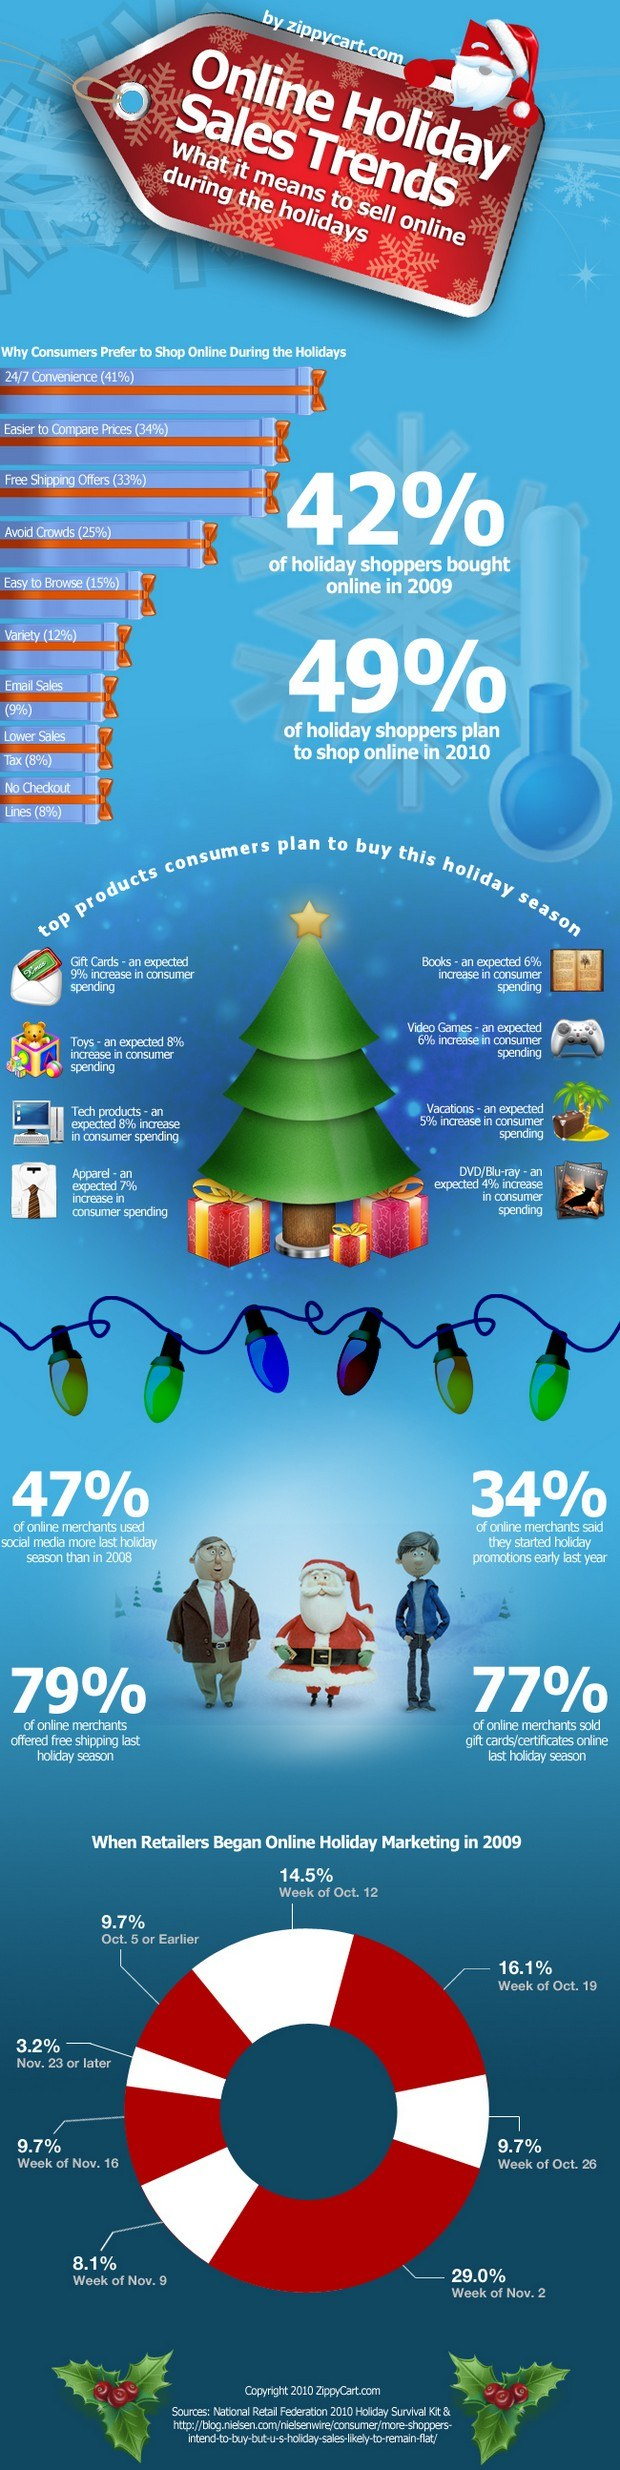 online holiday sales trends